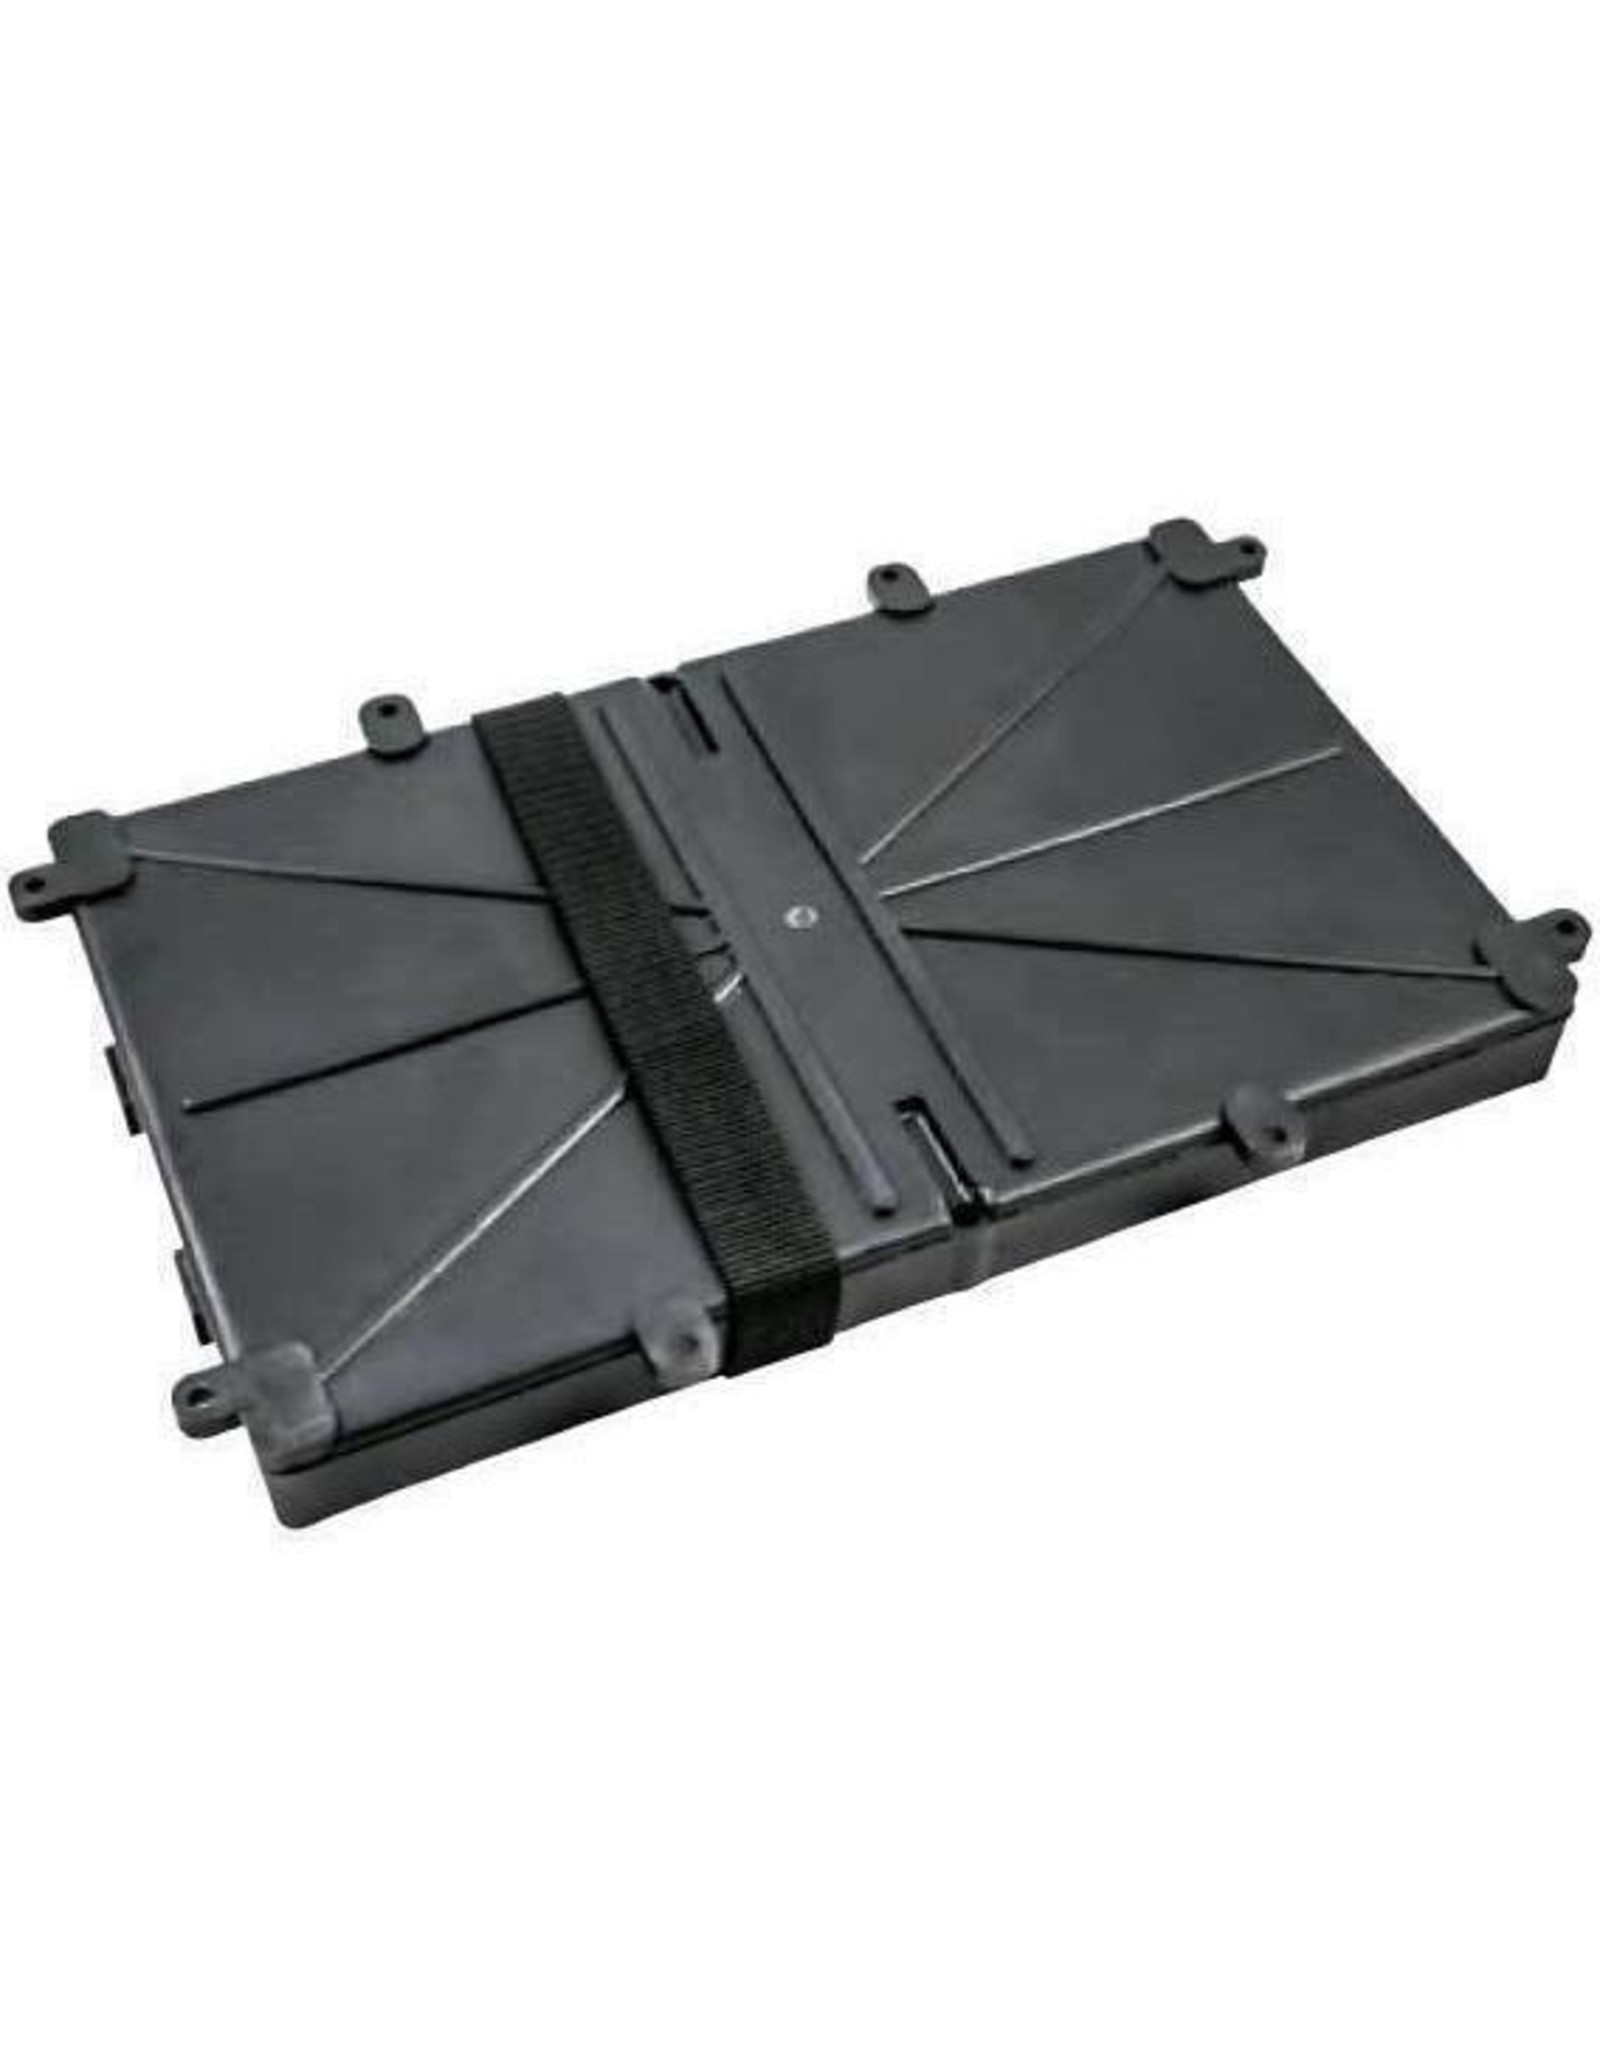 TH Marine Battery Tray 27/27M Series With Stainless Buckle